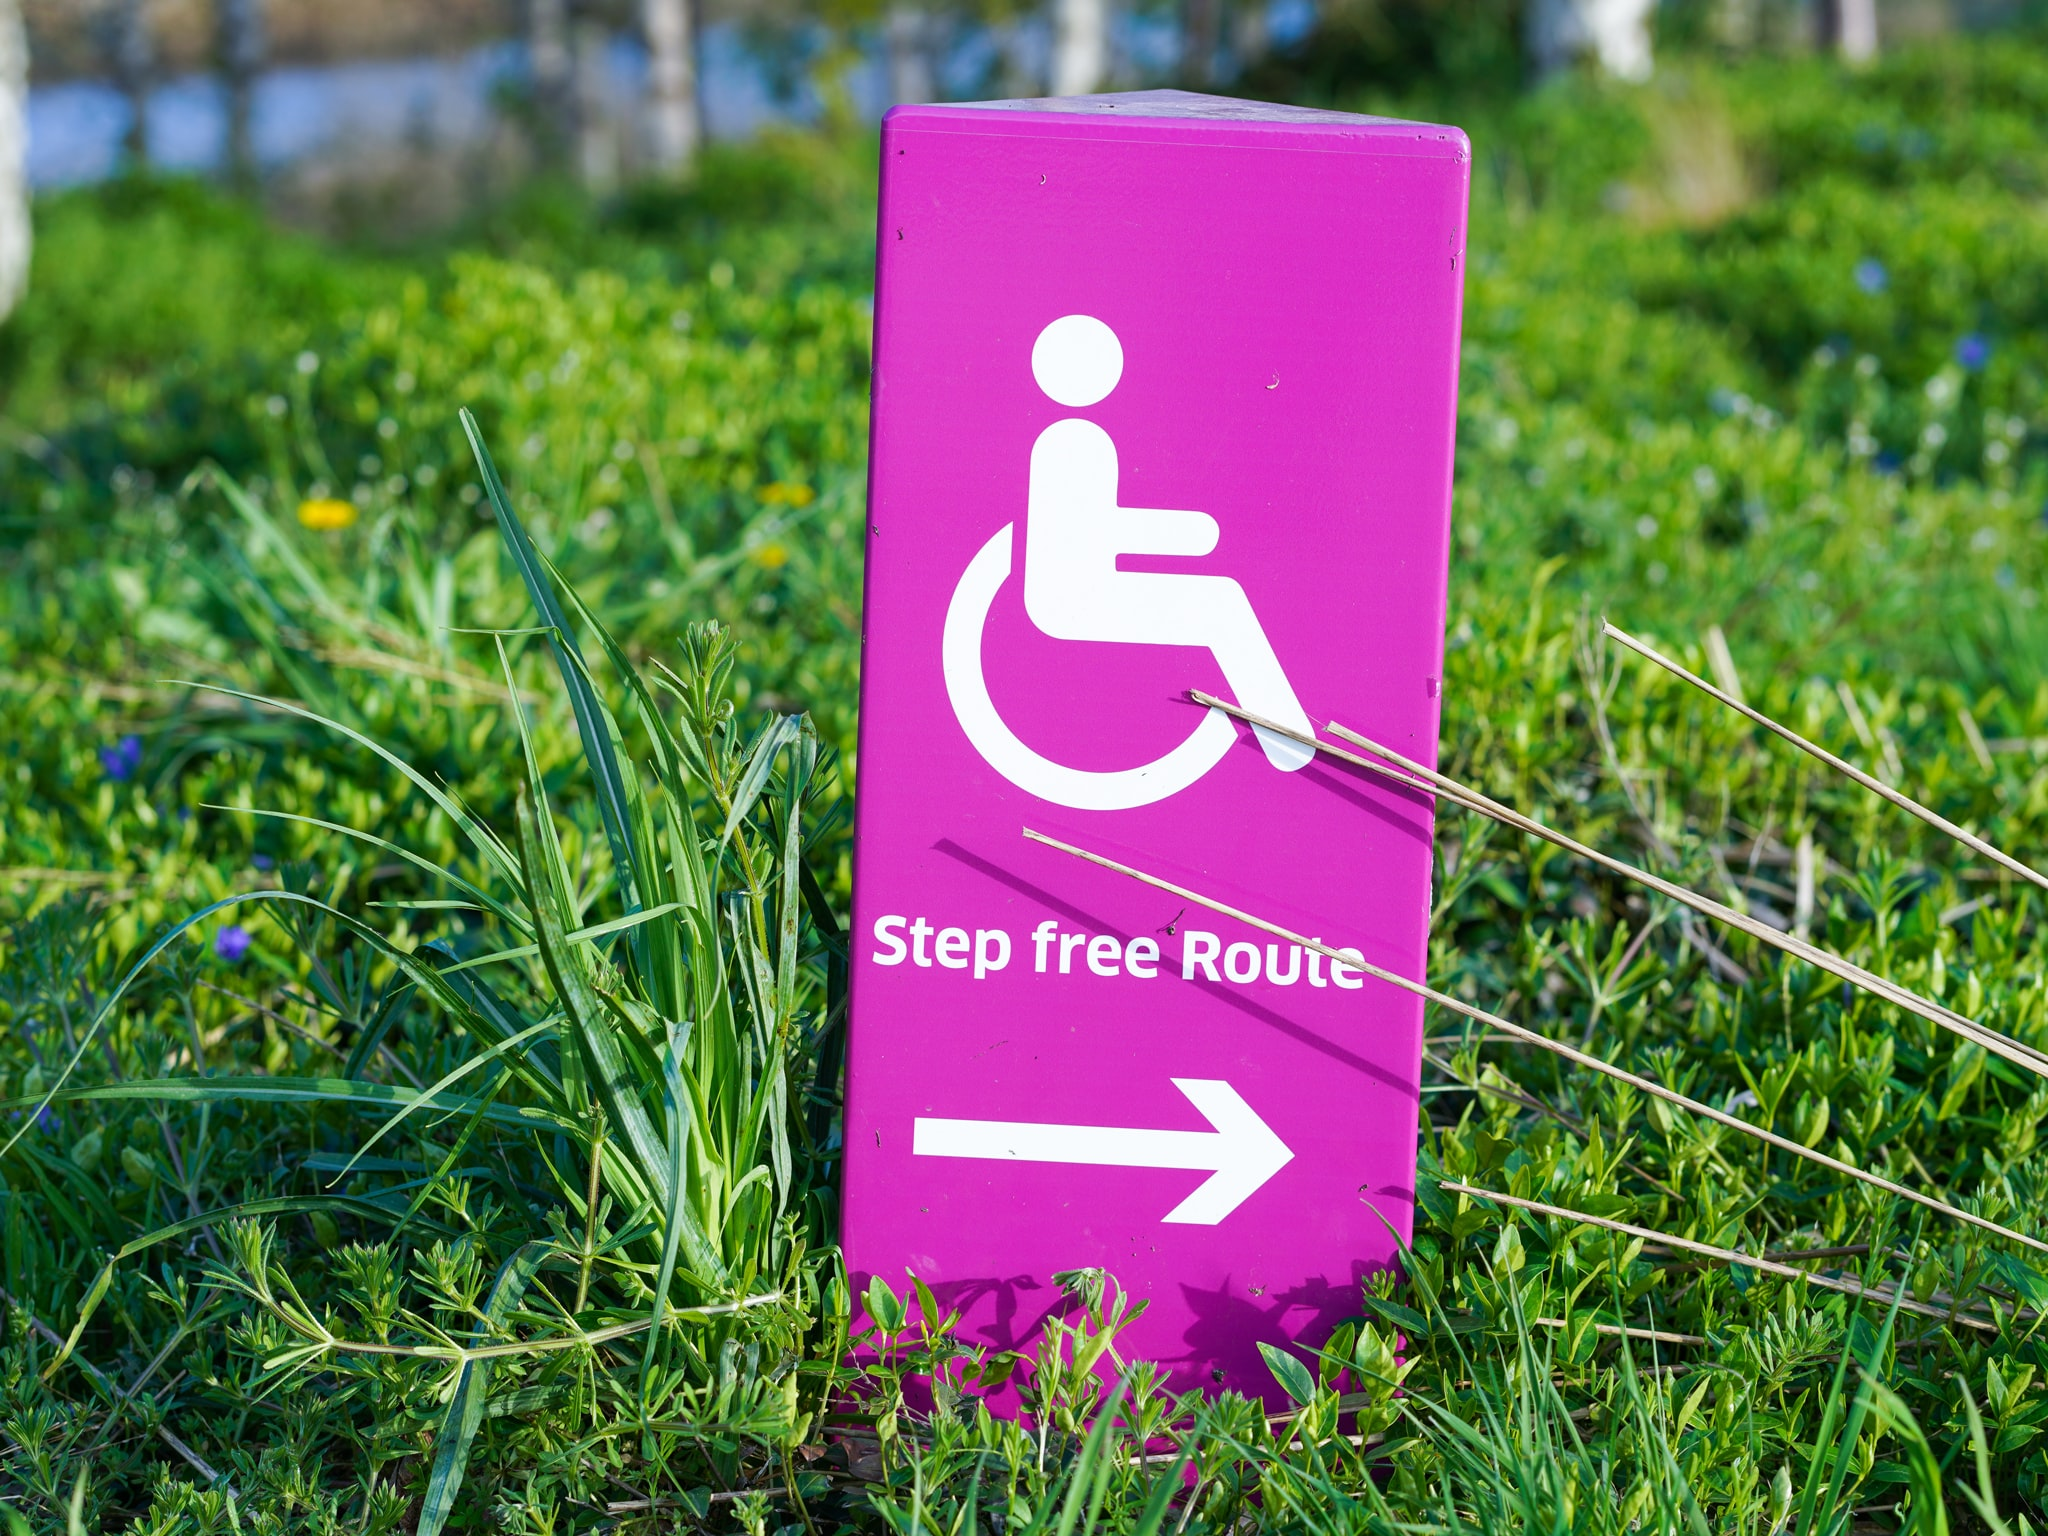 Step free route sign